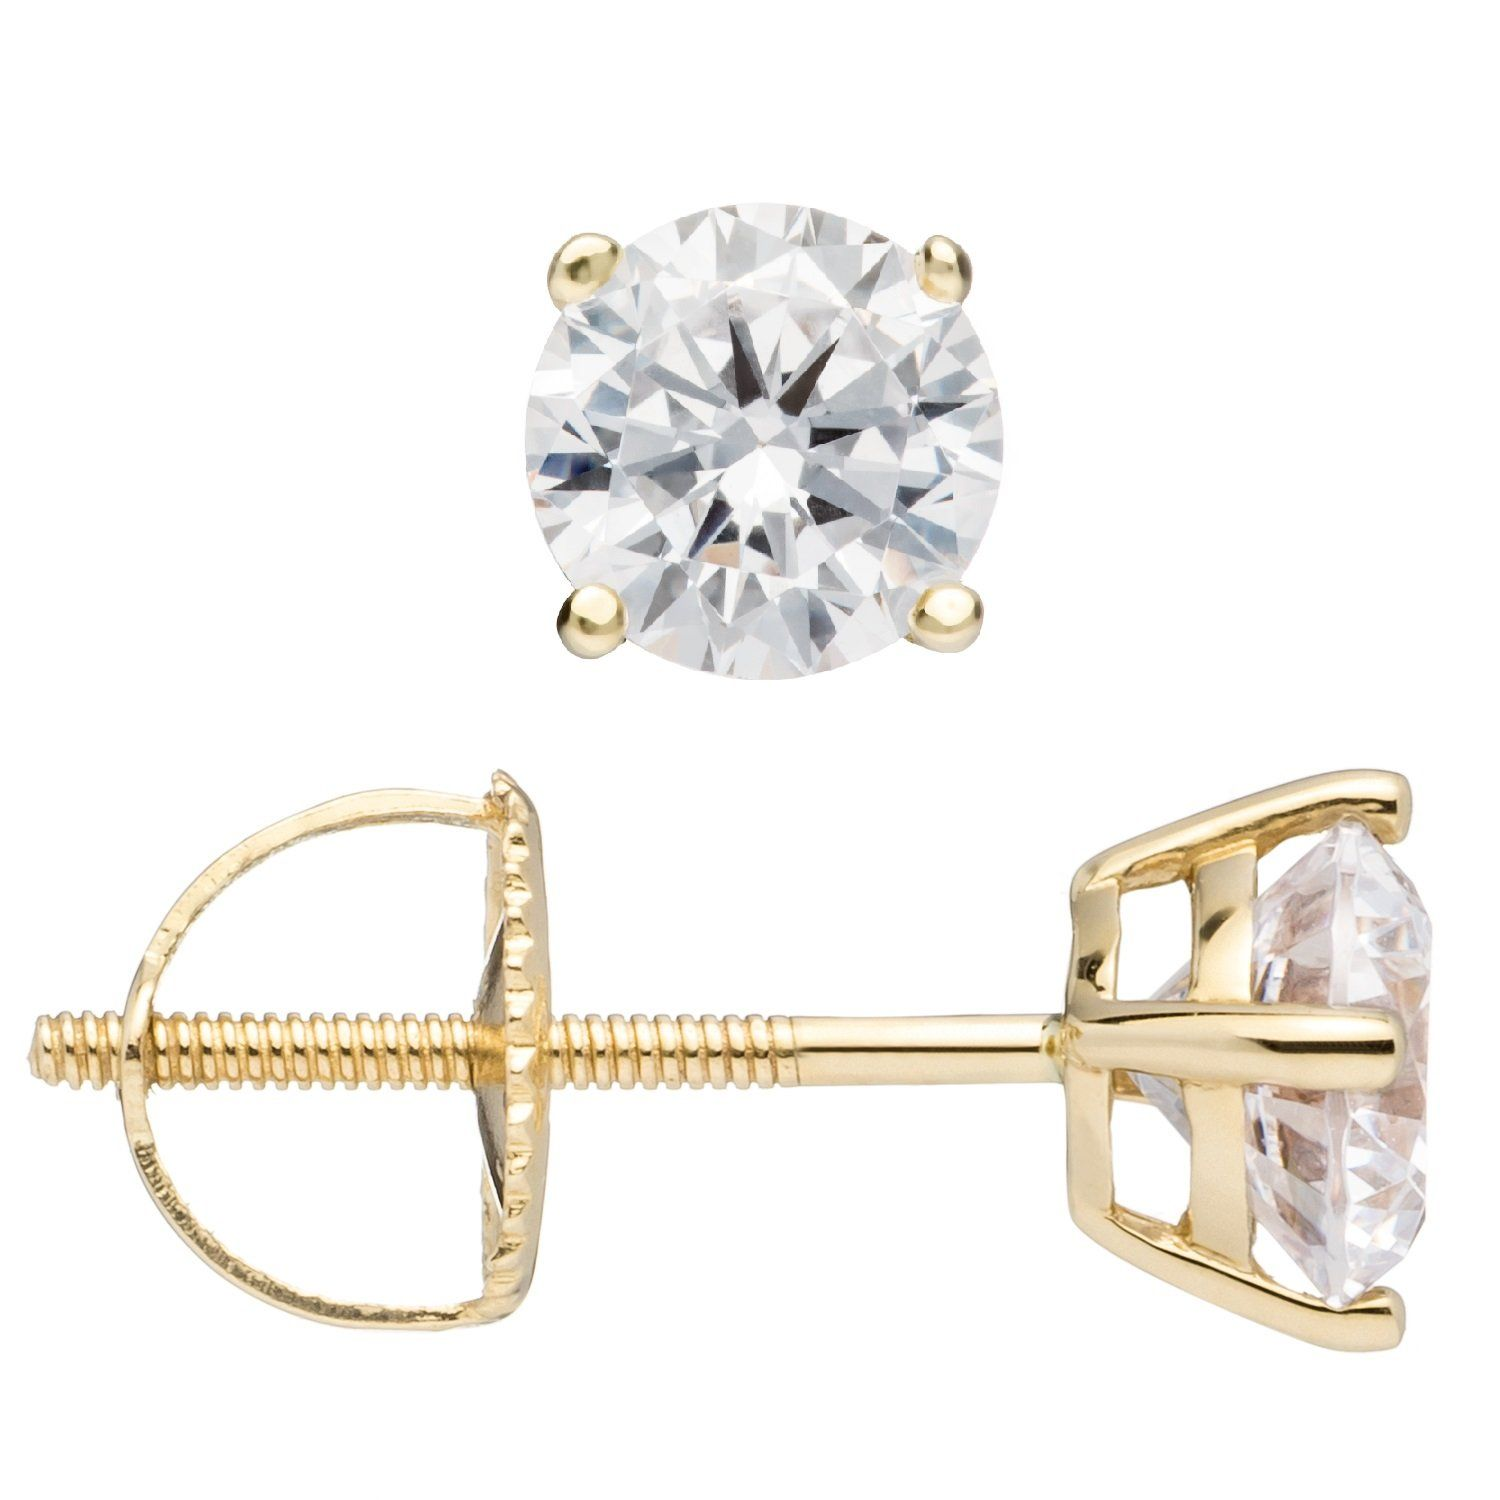 76068a39f0b 14K Solid Yellow Gold Round Cut Cubic Zirconia Stud Earrings